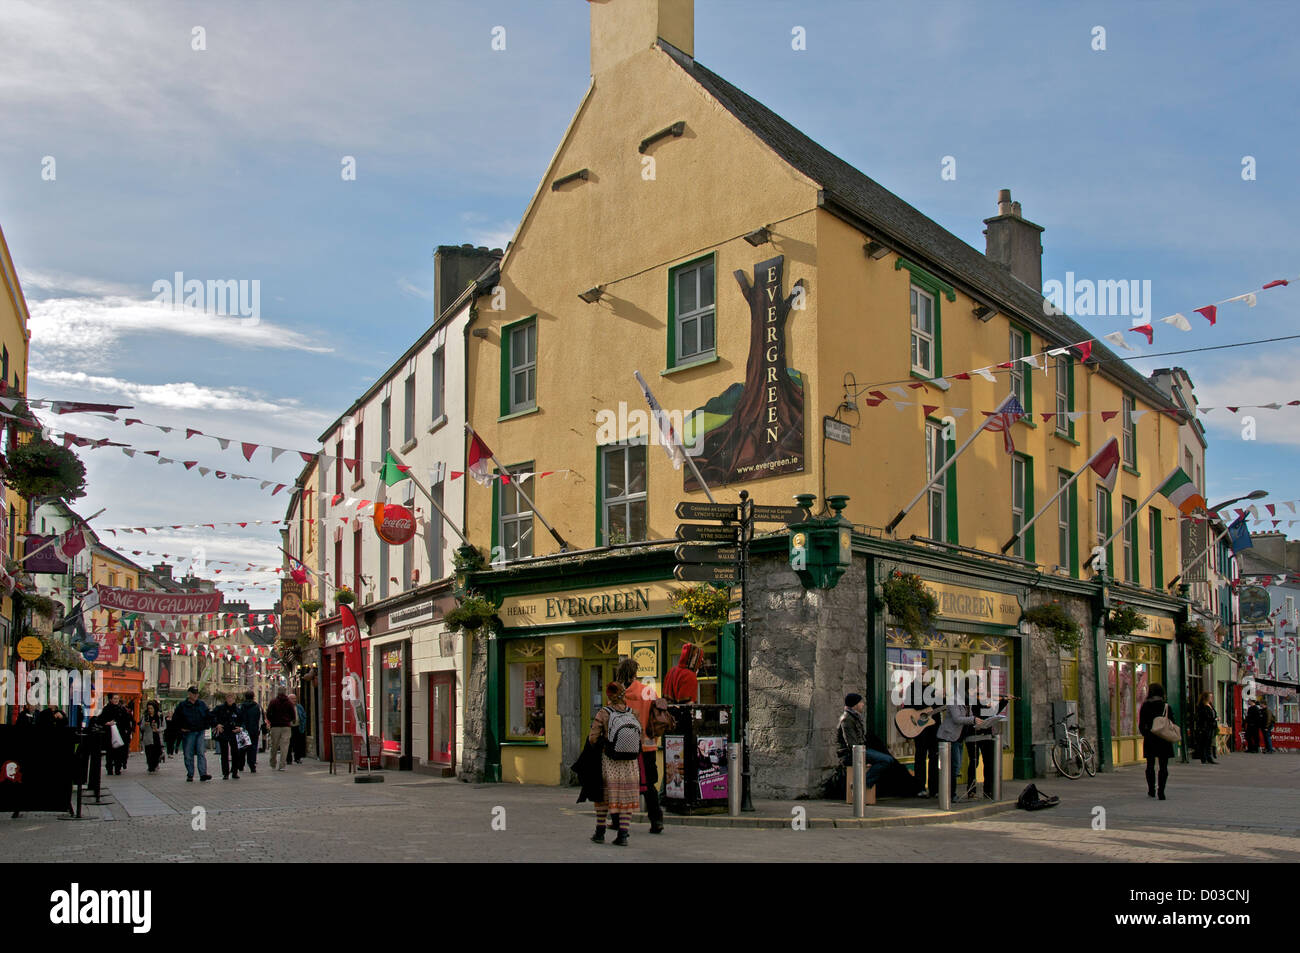 Evergreen pub galway county galway ireland stock photo for Evergreen shop